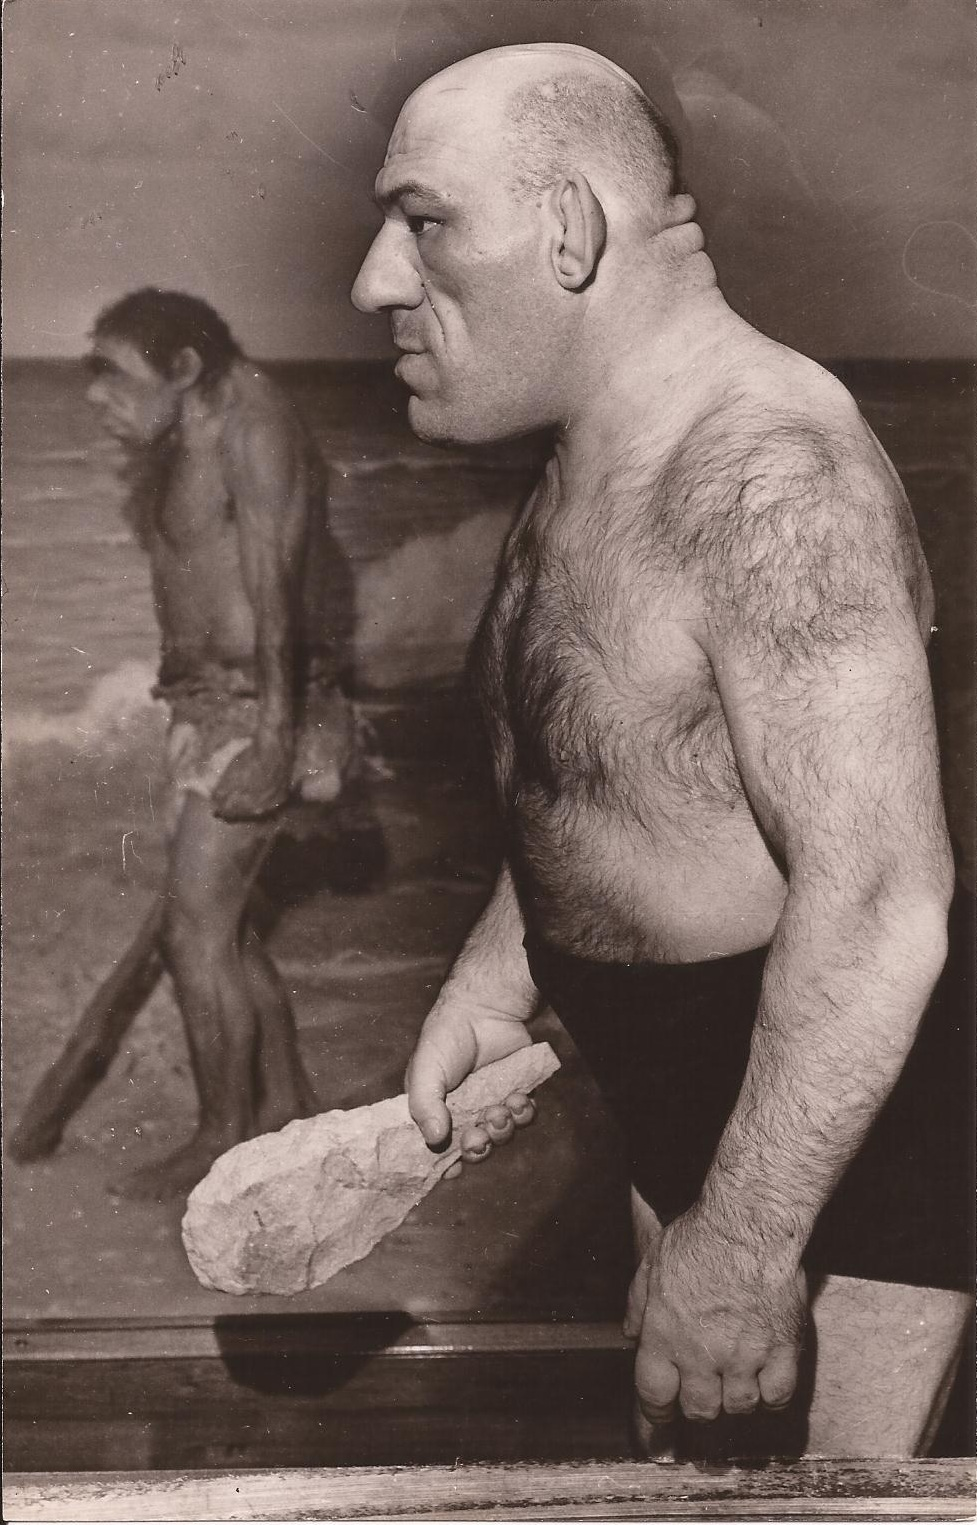 ... Maurice Tillet, Death Masks, and how he inspired Shrek: MAURICE TILLET Maurice Tillet Shrek